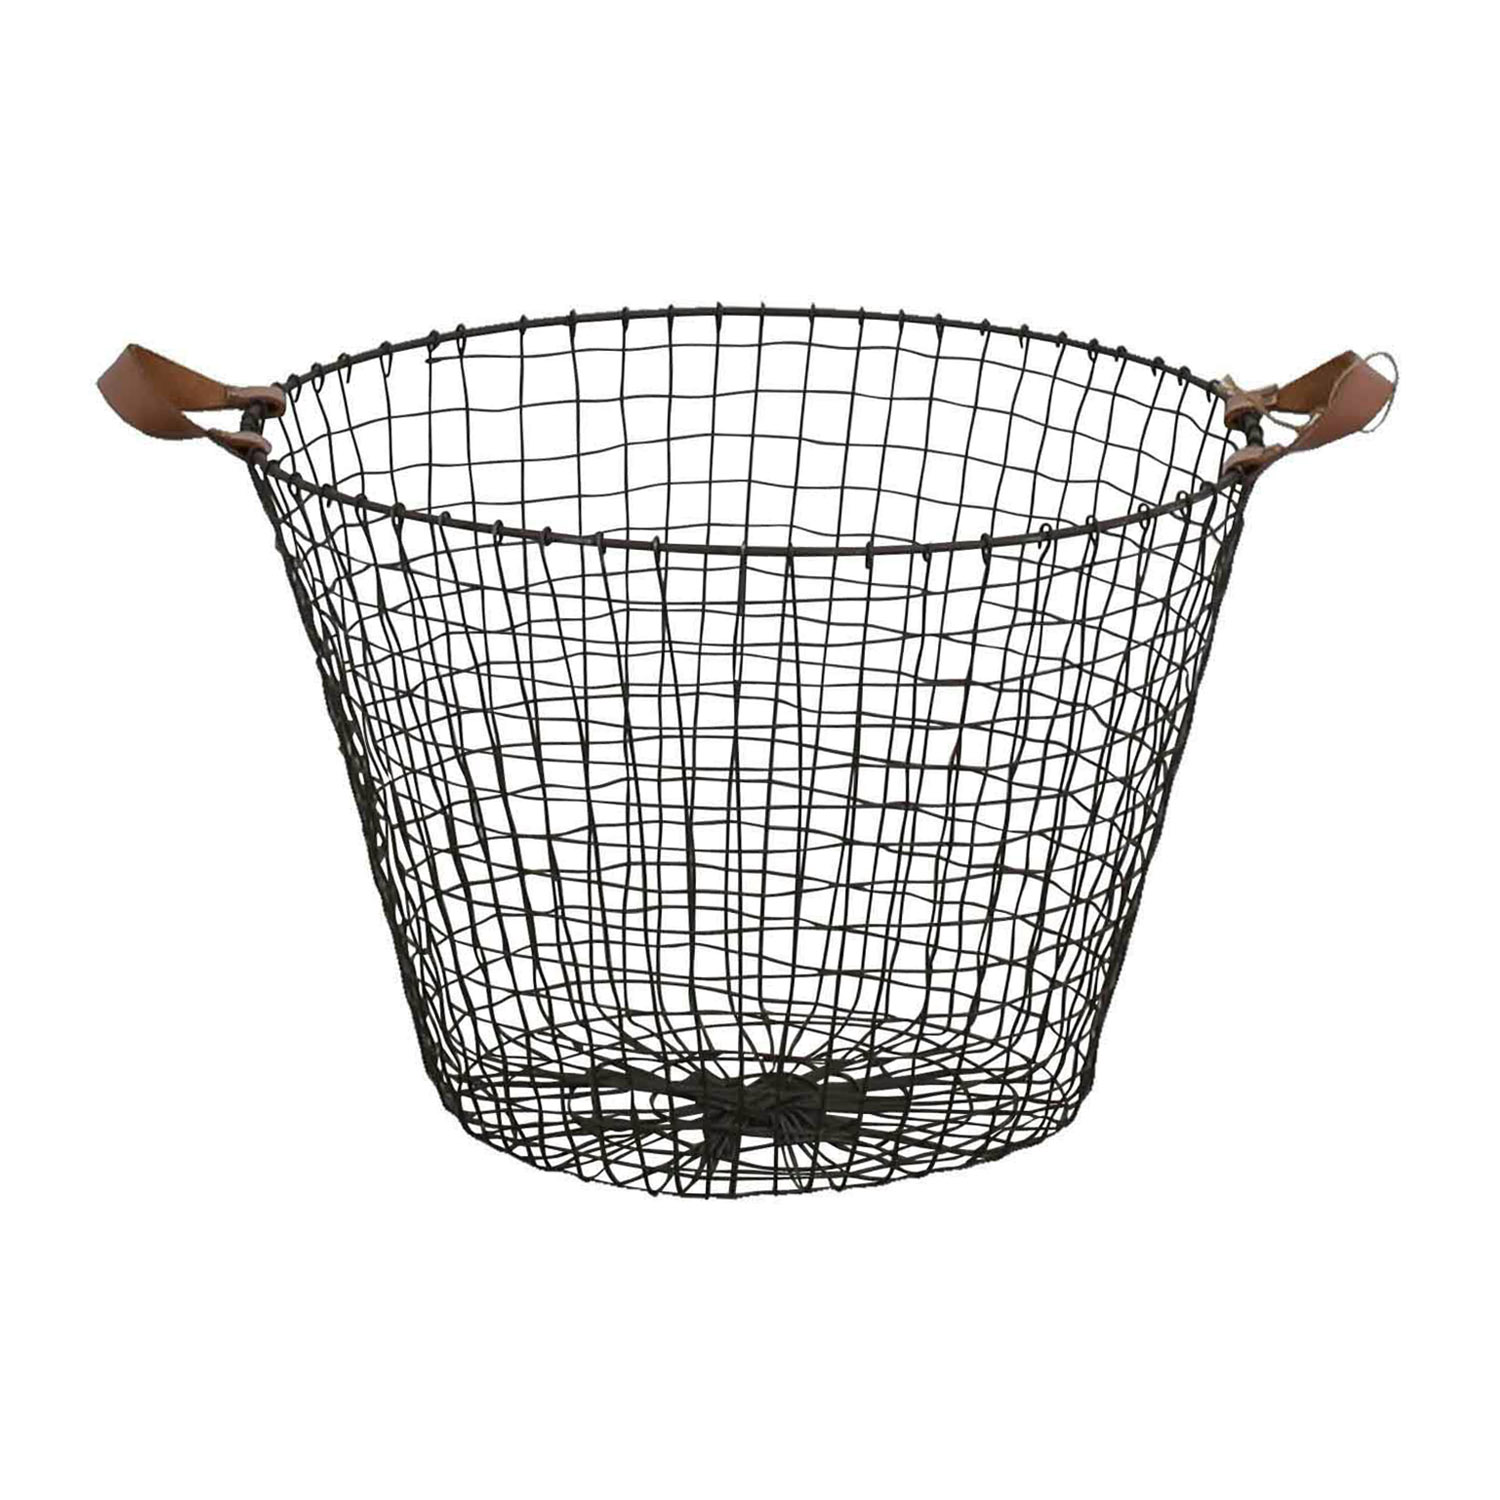 HomeGoods HomeGoods Metal and Leather Basket price